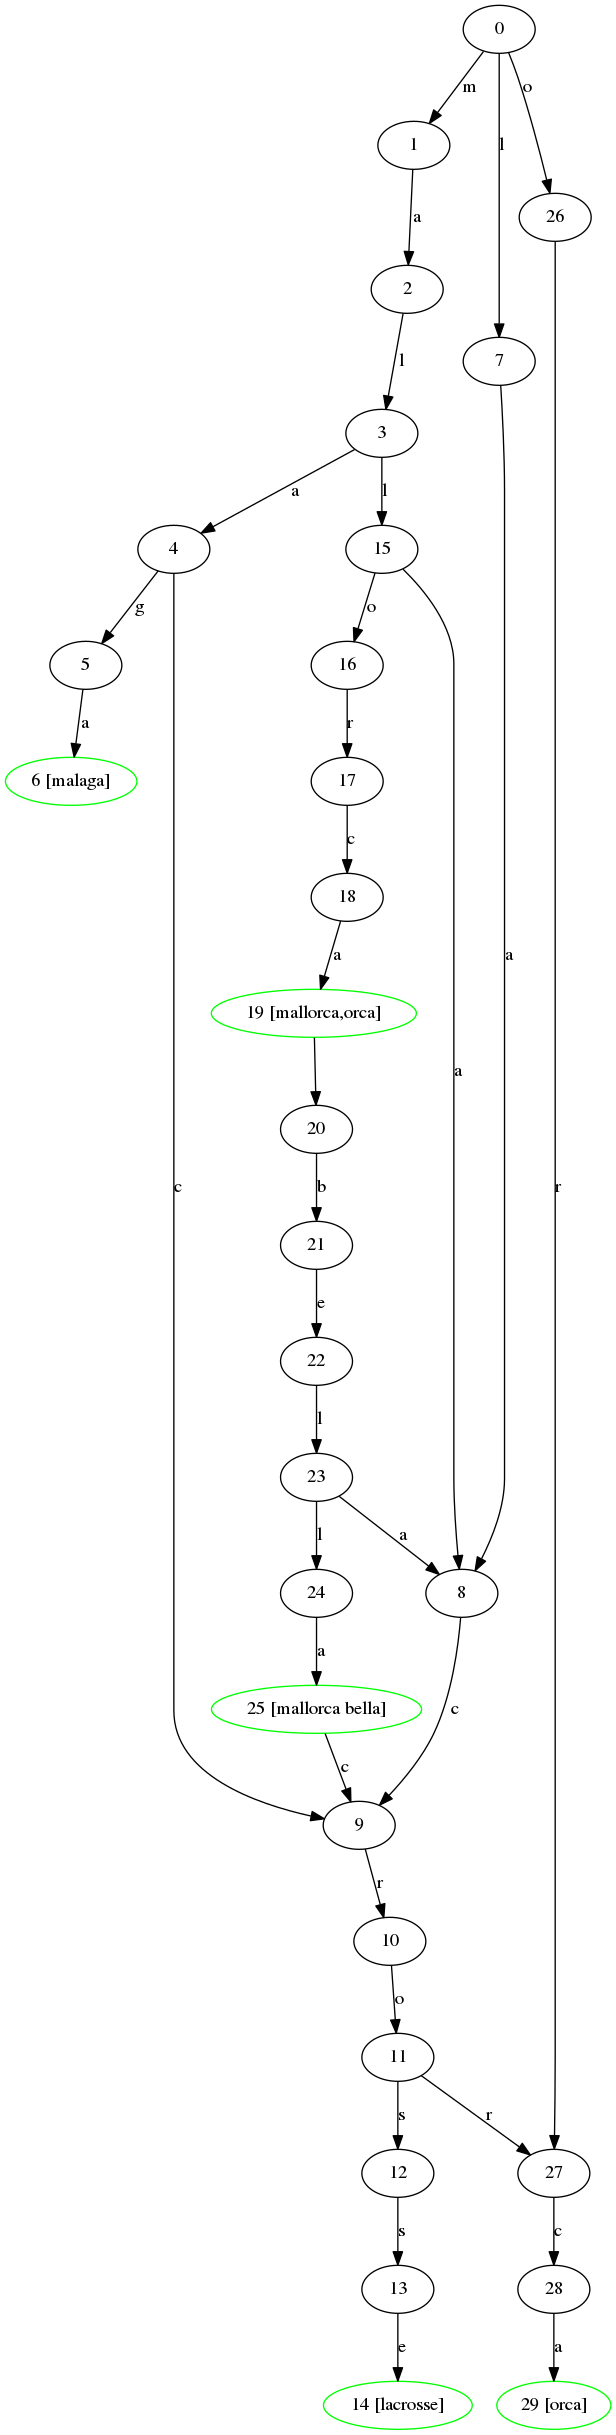 graph for kwtree